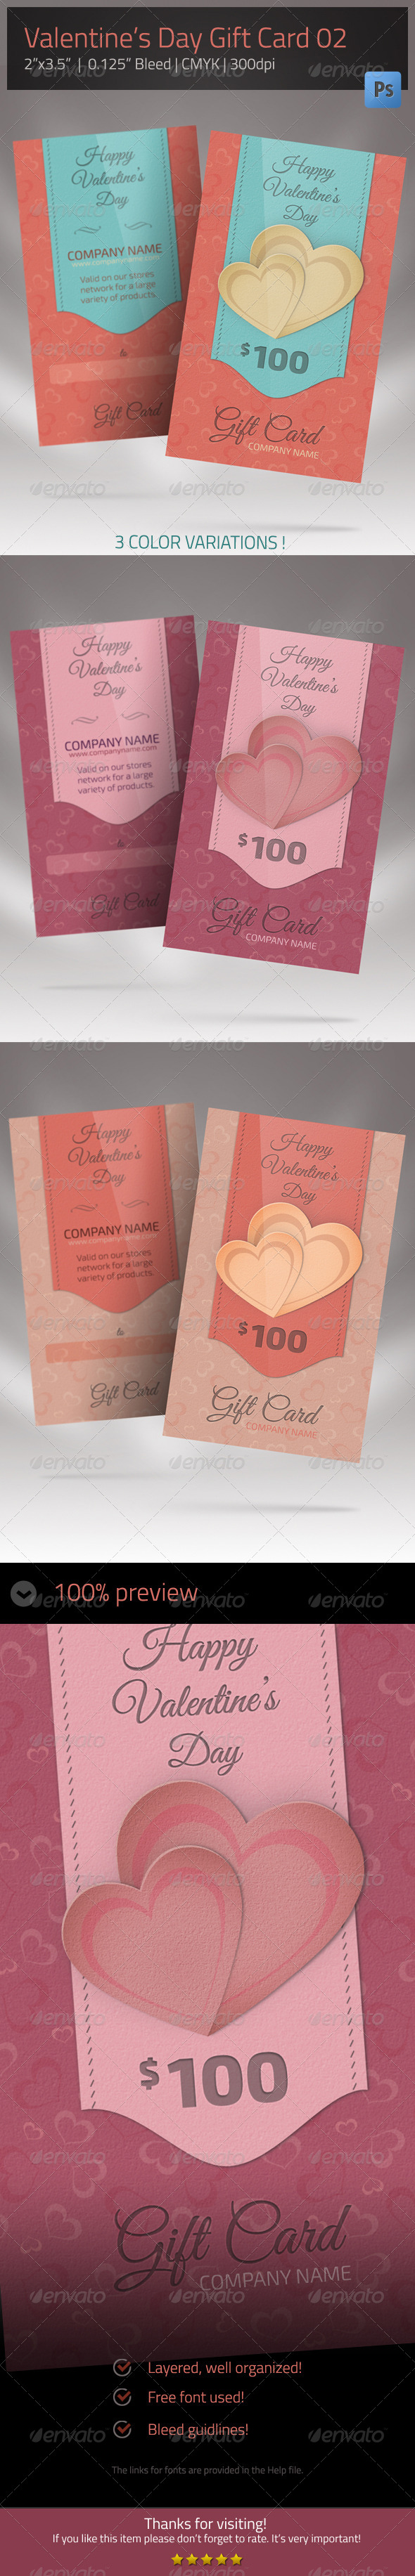 Gift Card for Valentines Day 02 - Loyalty Cards Cards & Invites